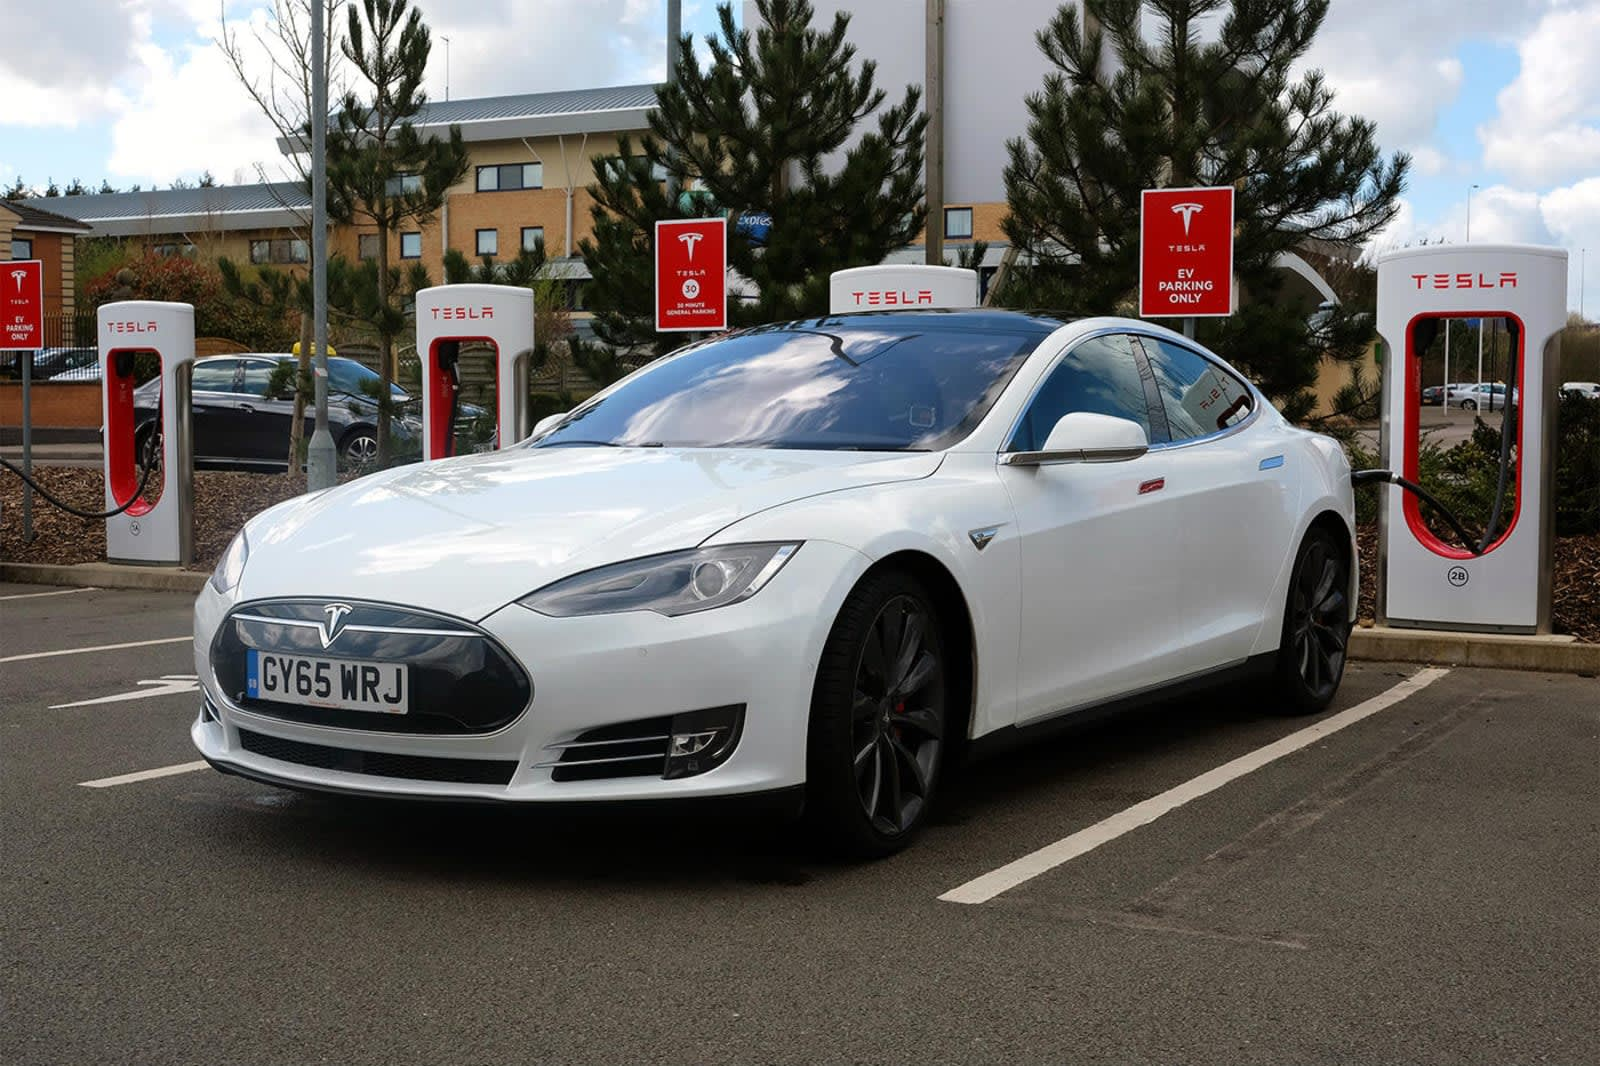 Tesla Charging Stations Nyc >> Tesla makes a small cut to its controversial Supercharger